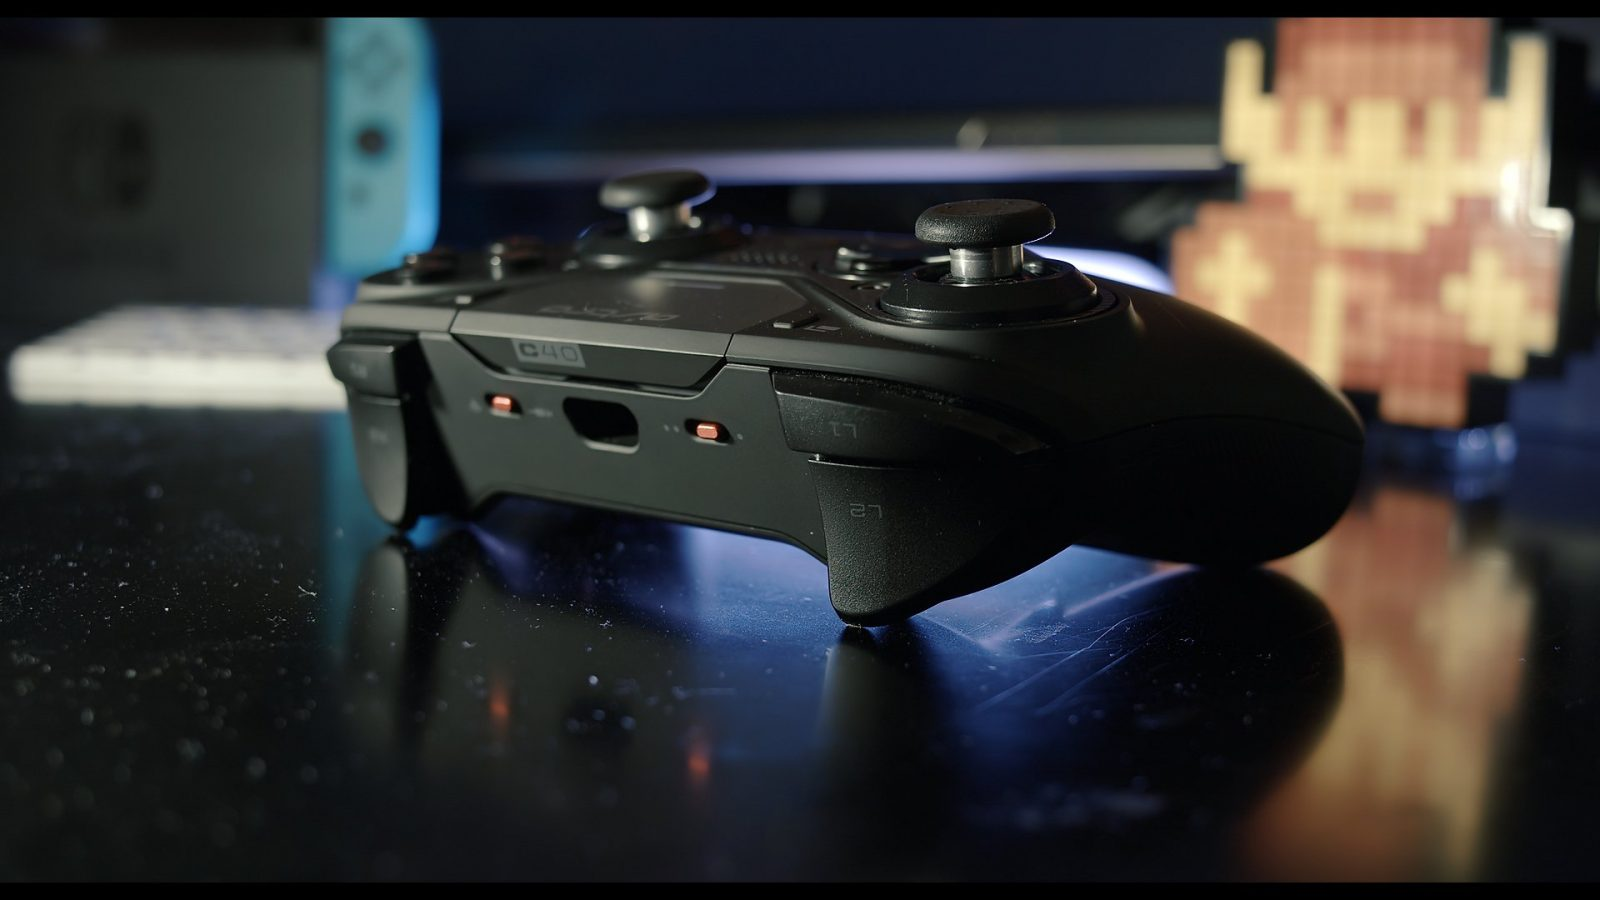 The Astro C40 Might be the Best Controller on the PS4. But it Ain't Cheap